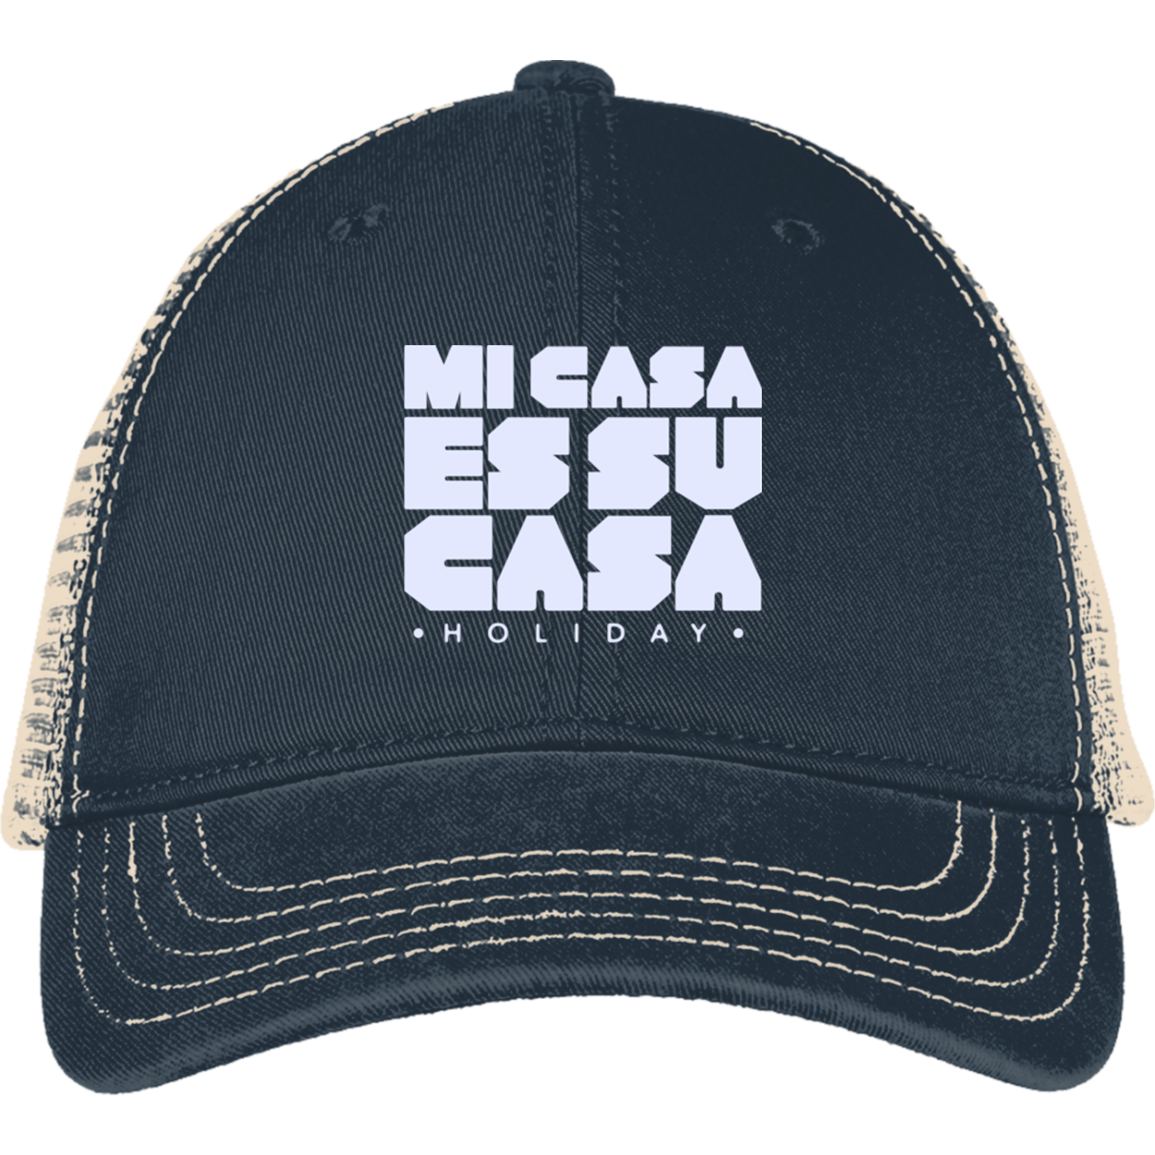 Classic Mi Casa Holiday District Mesh Back Cap White Embroidery